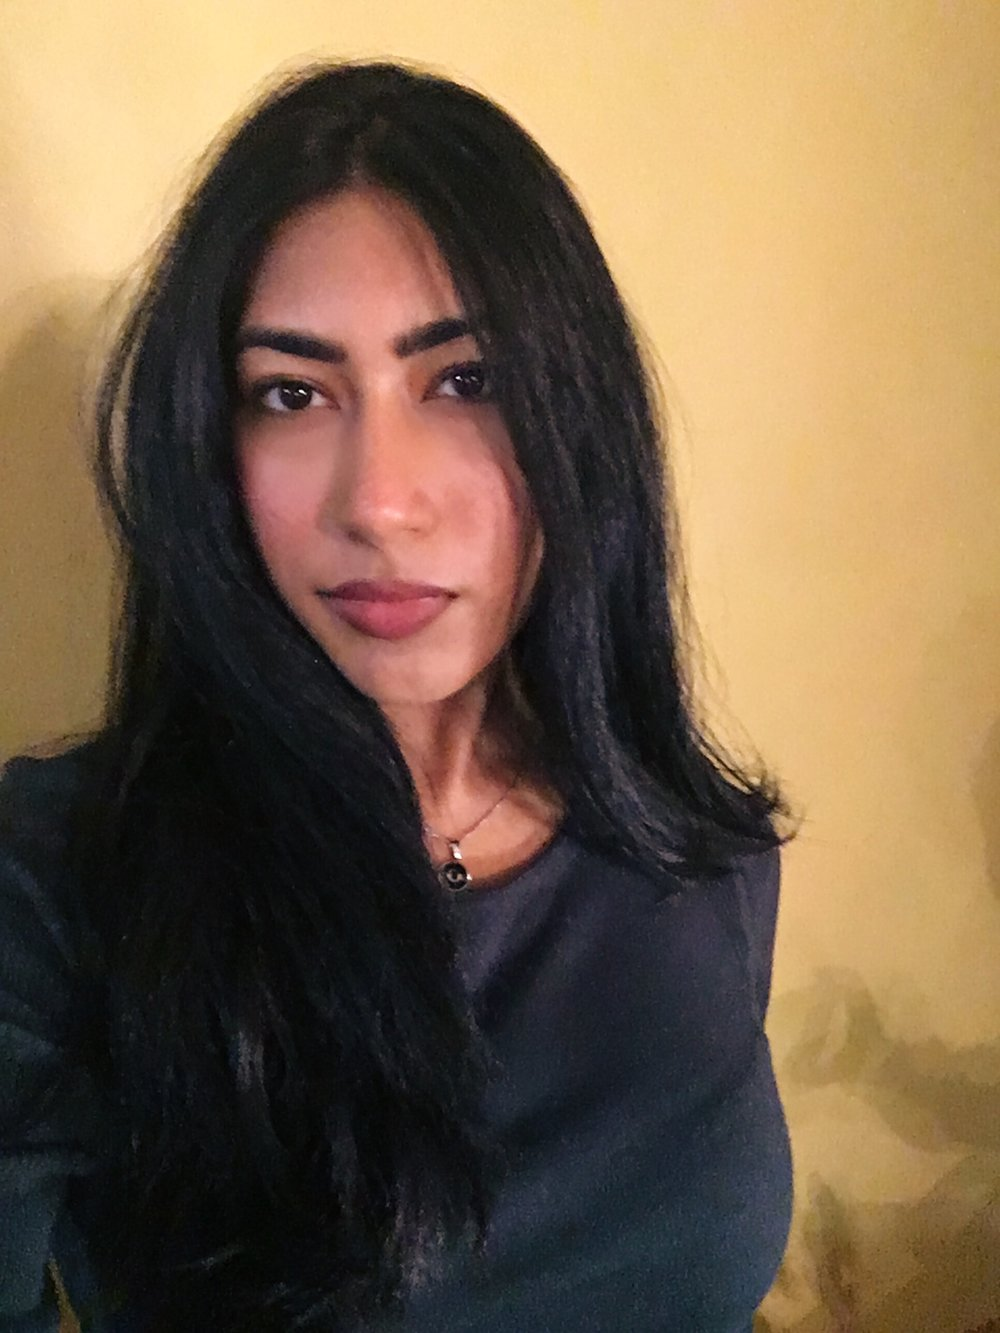 Divina Ramgopal    Managing Editor   Divina is a writer studying English, Creative Writing, and Communications at Fordham University. Her writings can be found in  Bricolage Journal ,  CURA Magazine , and scribbled on post-its, torn scraps of paper, and the back of her biology notes.